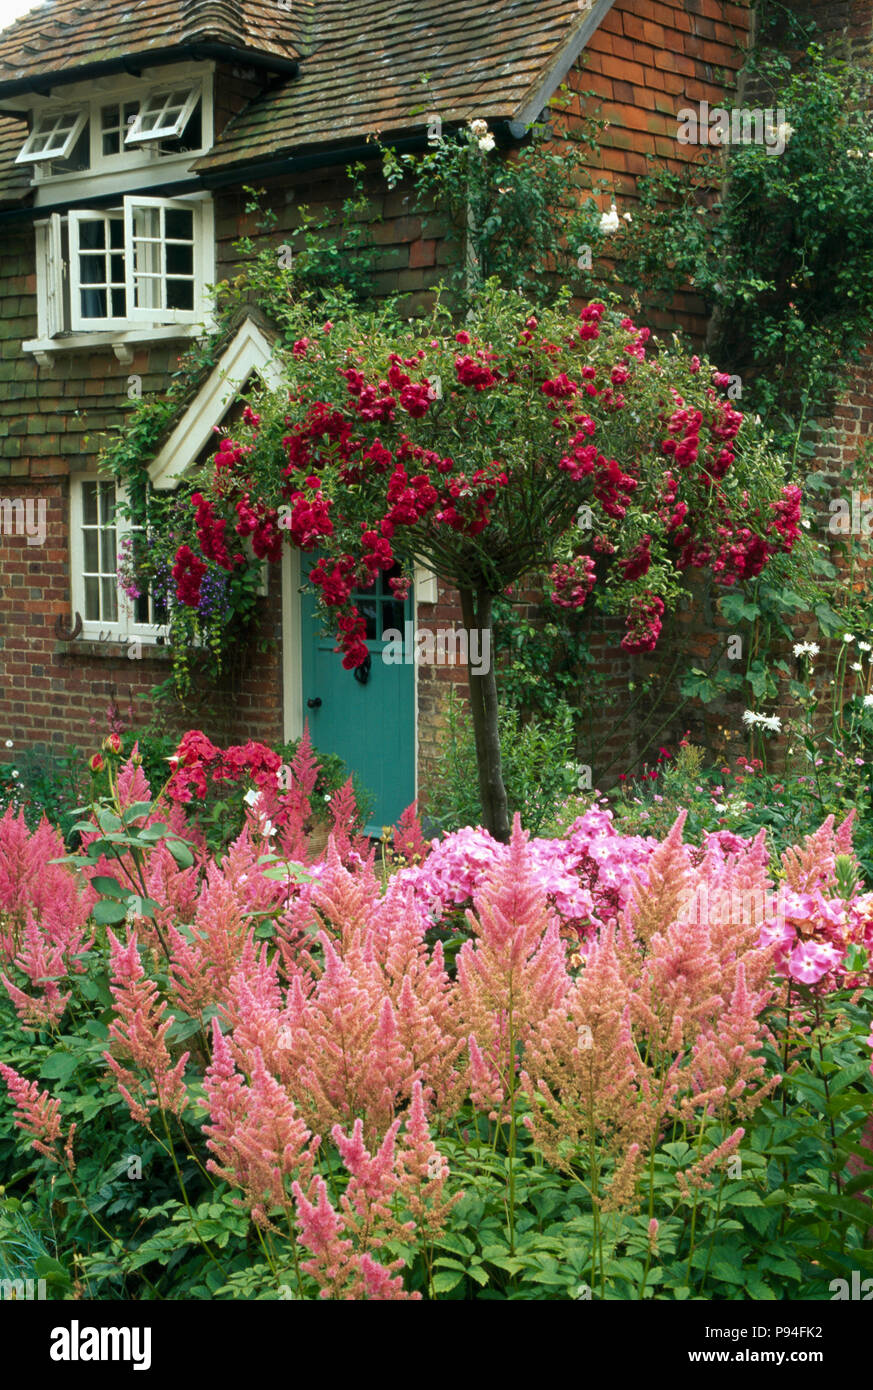 red standard rose in summer border with pink astilbe and phlox in